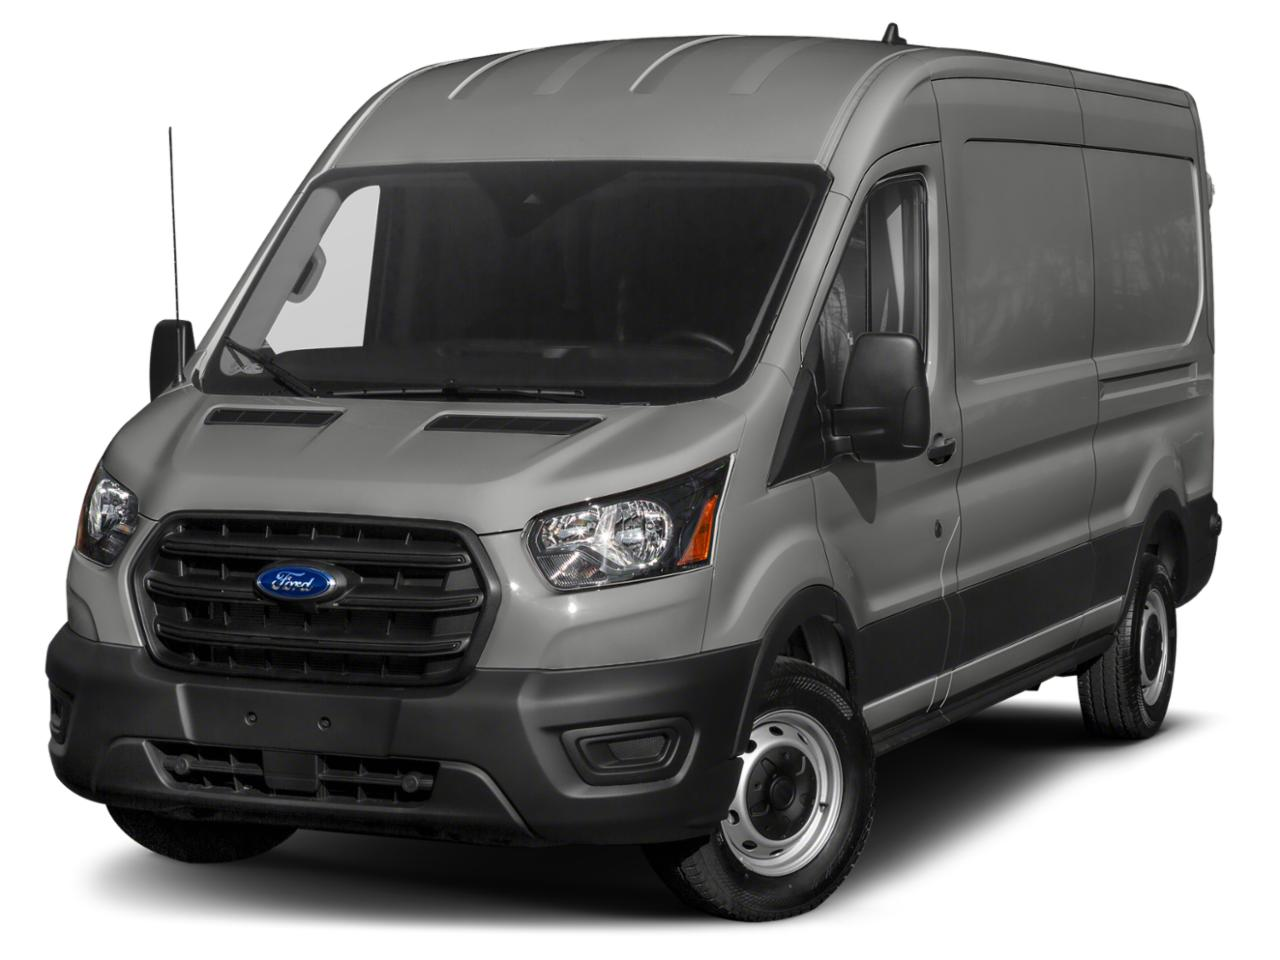 2021 Ford Transit Cargo Van Vehicle Photo in Plainfield, IL 60586